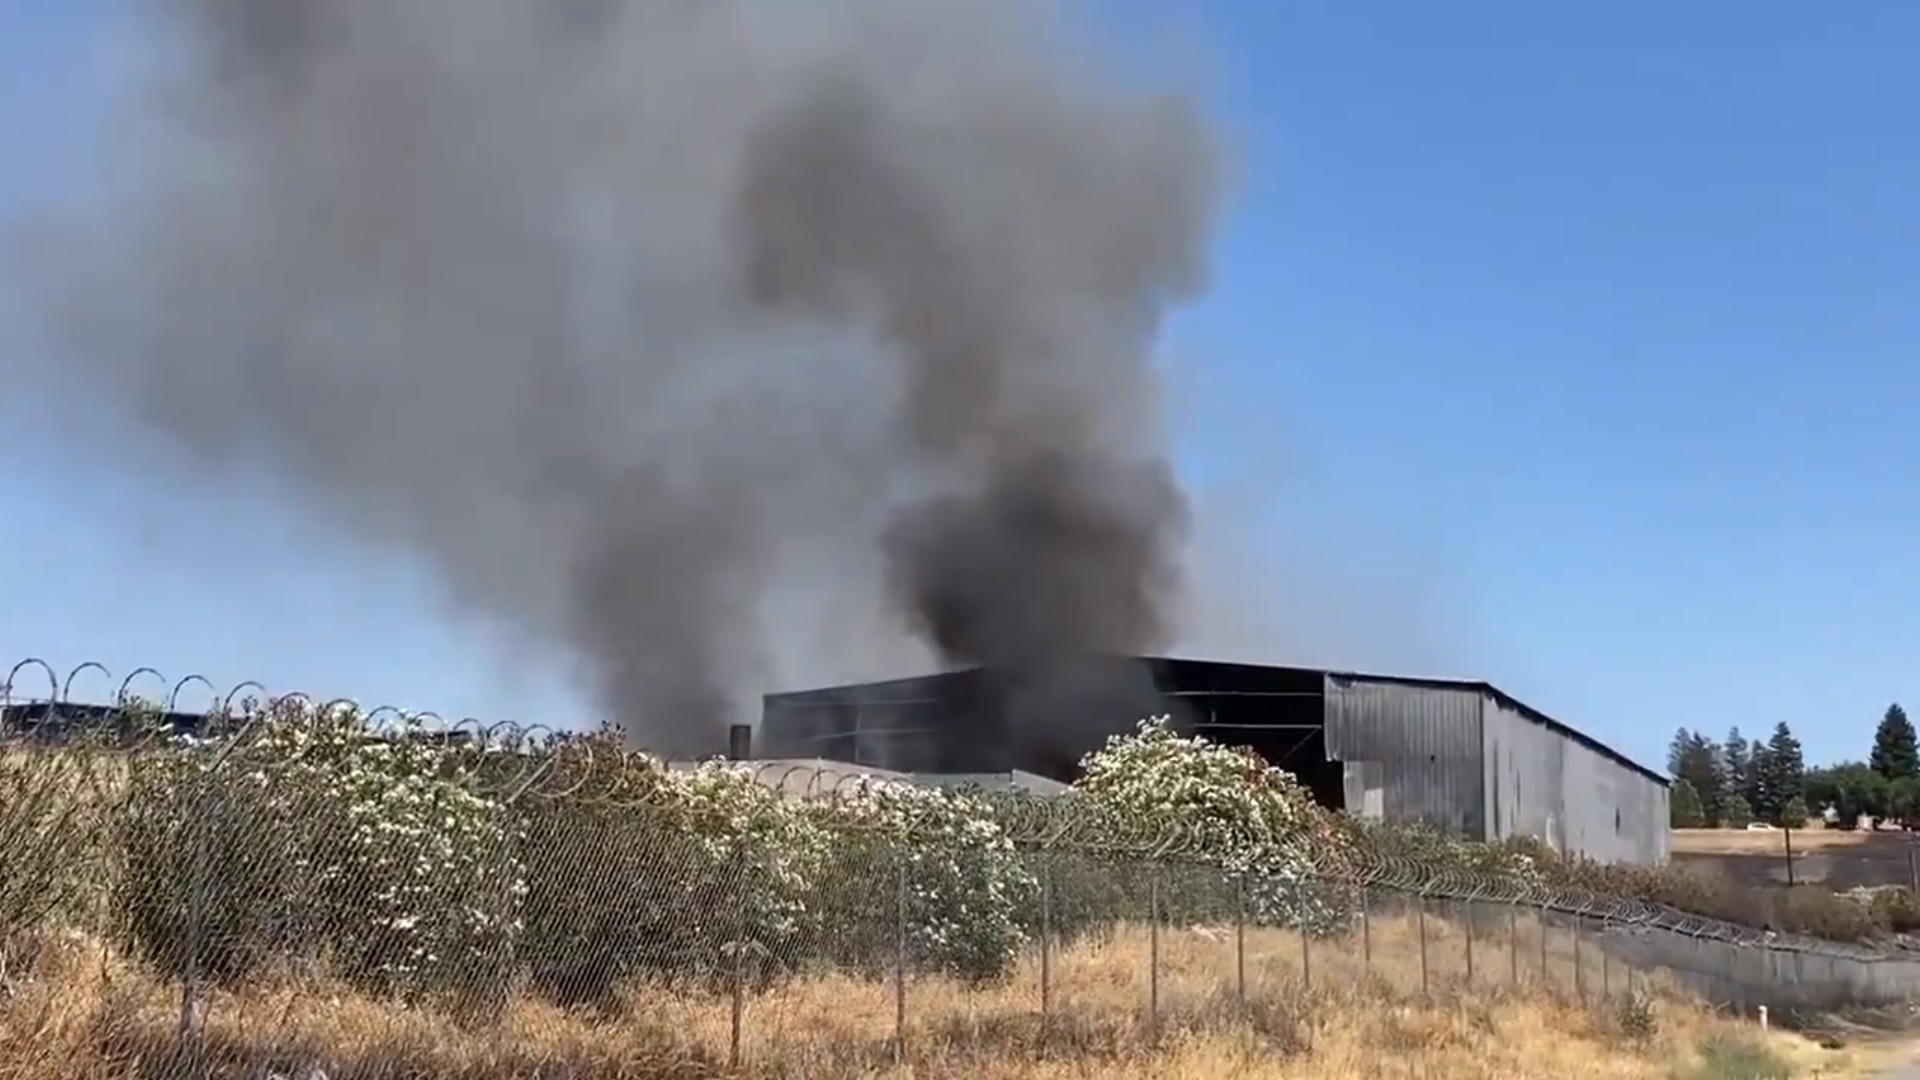 Northeast Fresno warehouse on fire, crews working to control flames